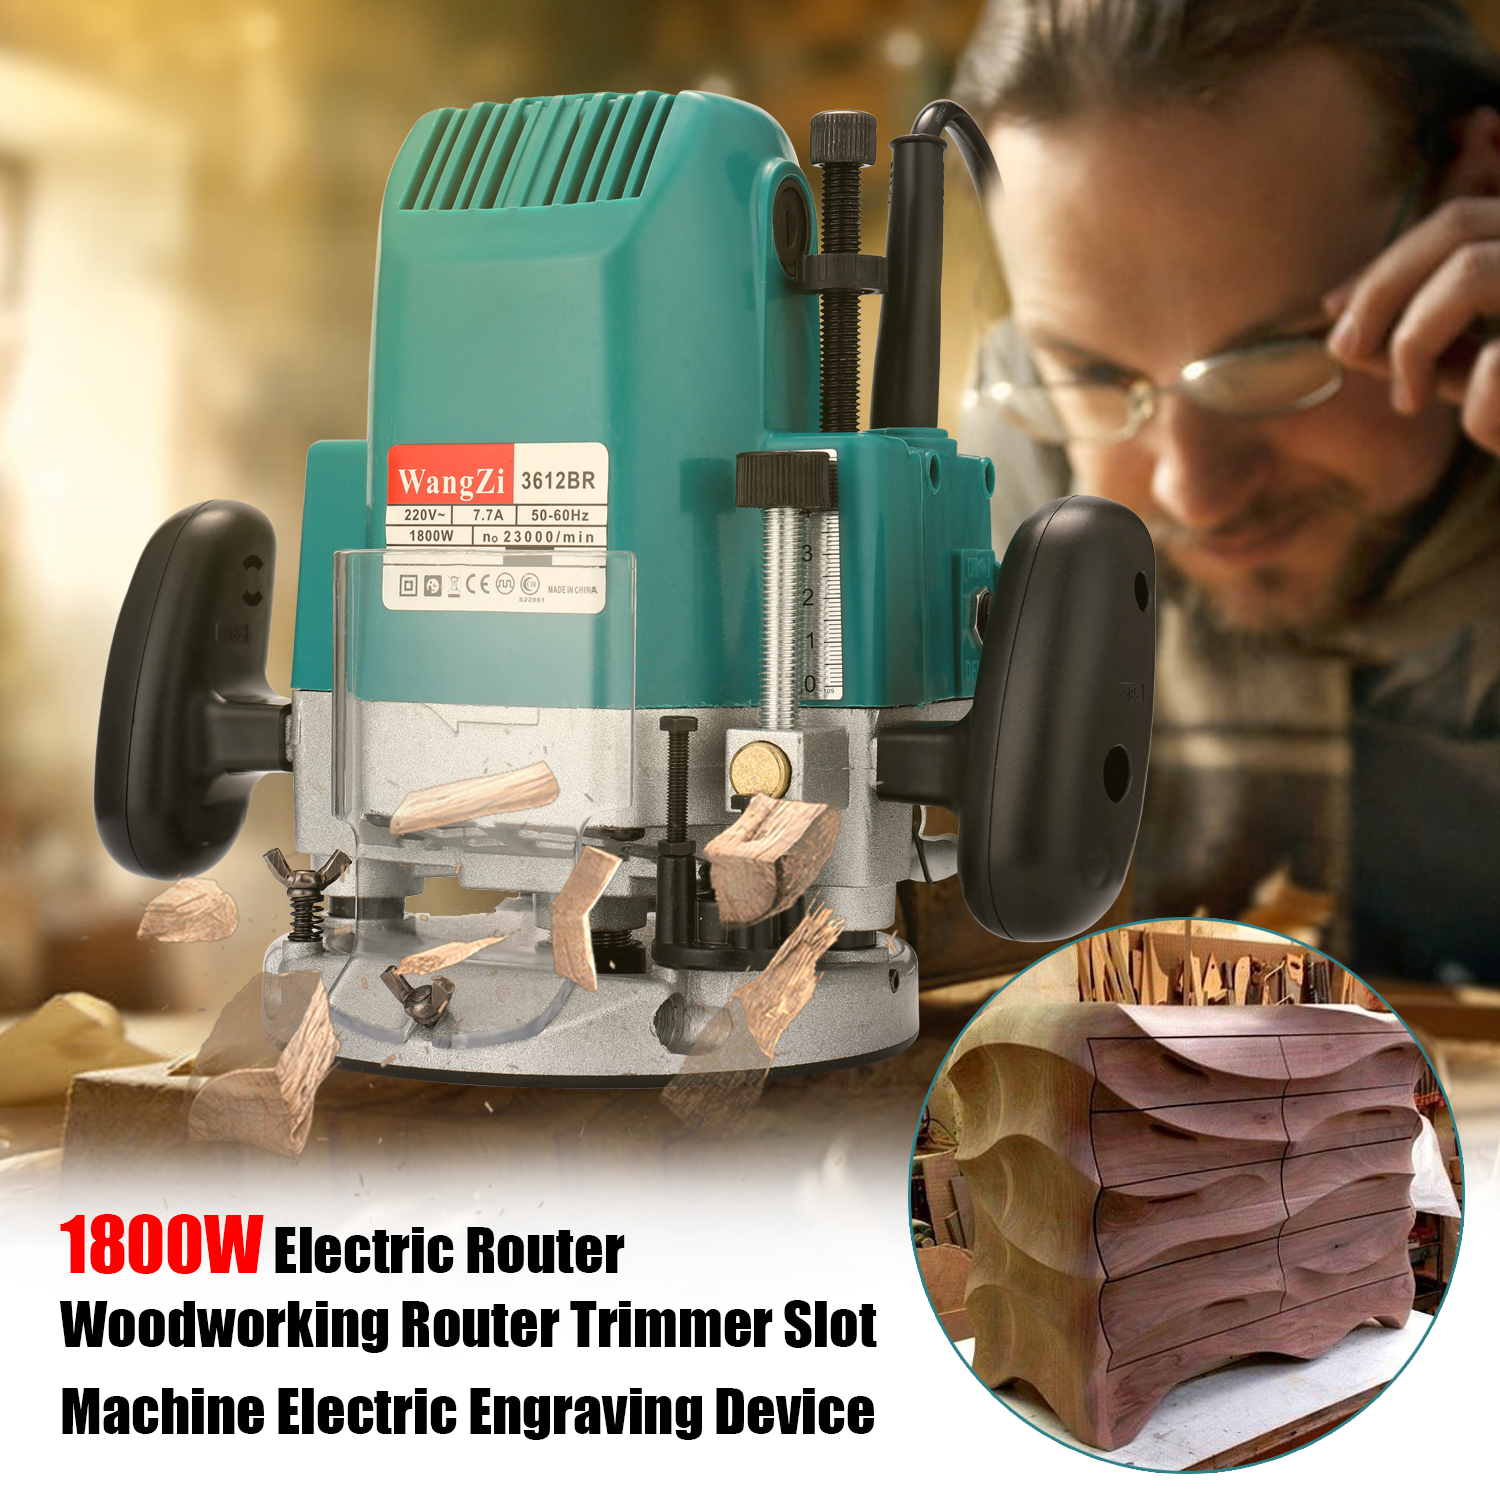 1800W Woodworking Electric Trimmer Wood Milling Engraving Slotting Trimming Machine Hand Carving Machine Wood Router - 5